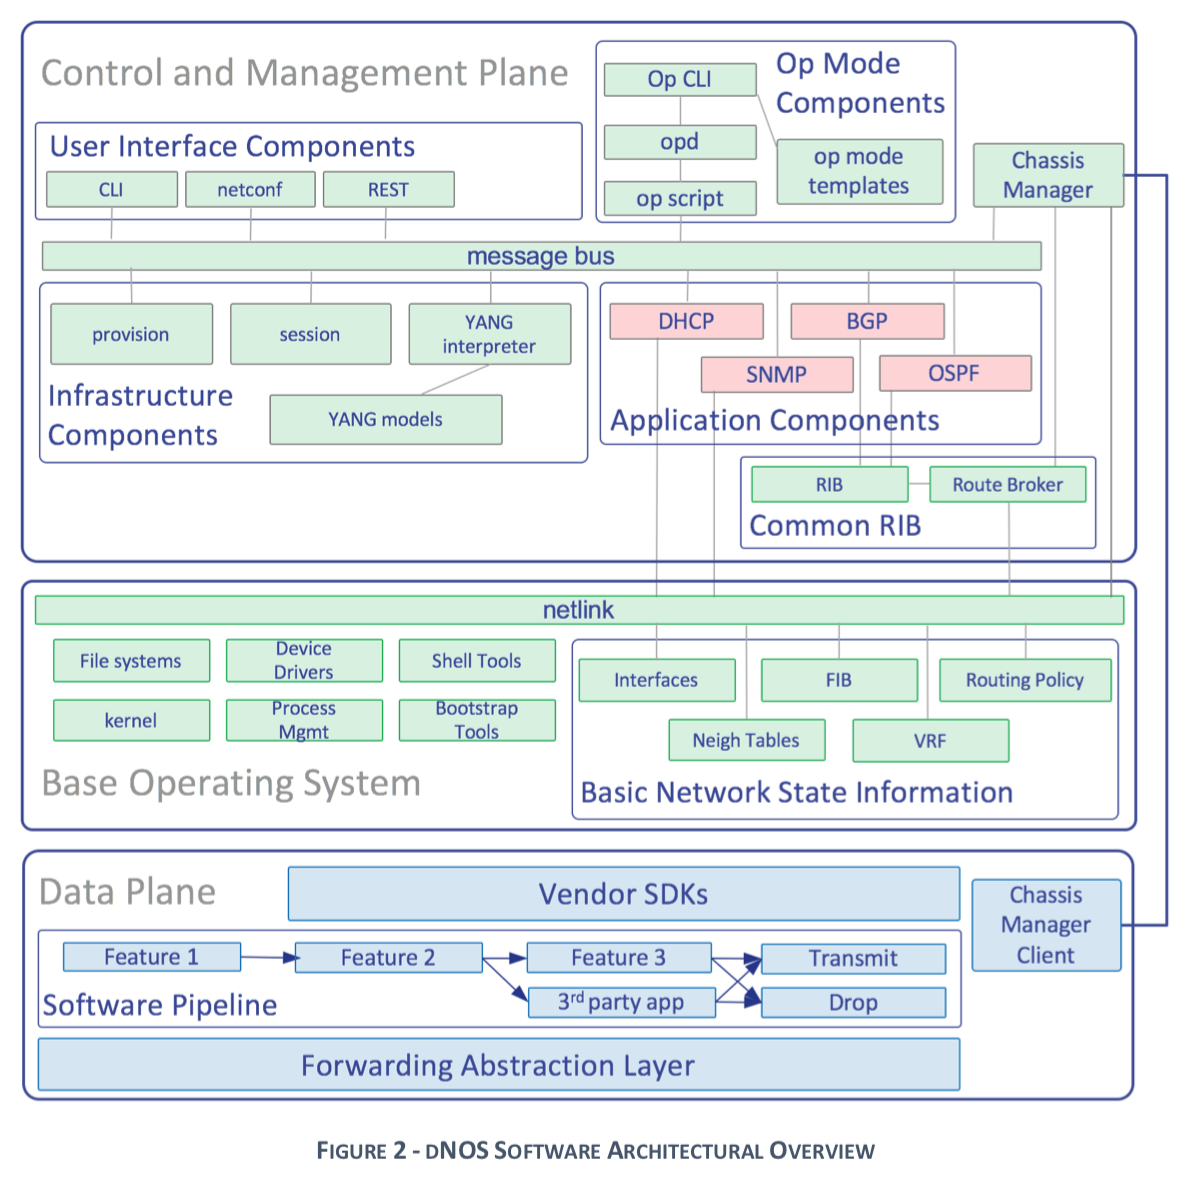 dnos software architectural overview fig 2